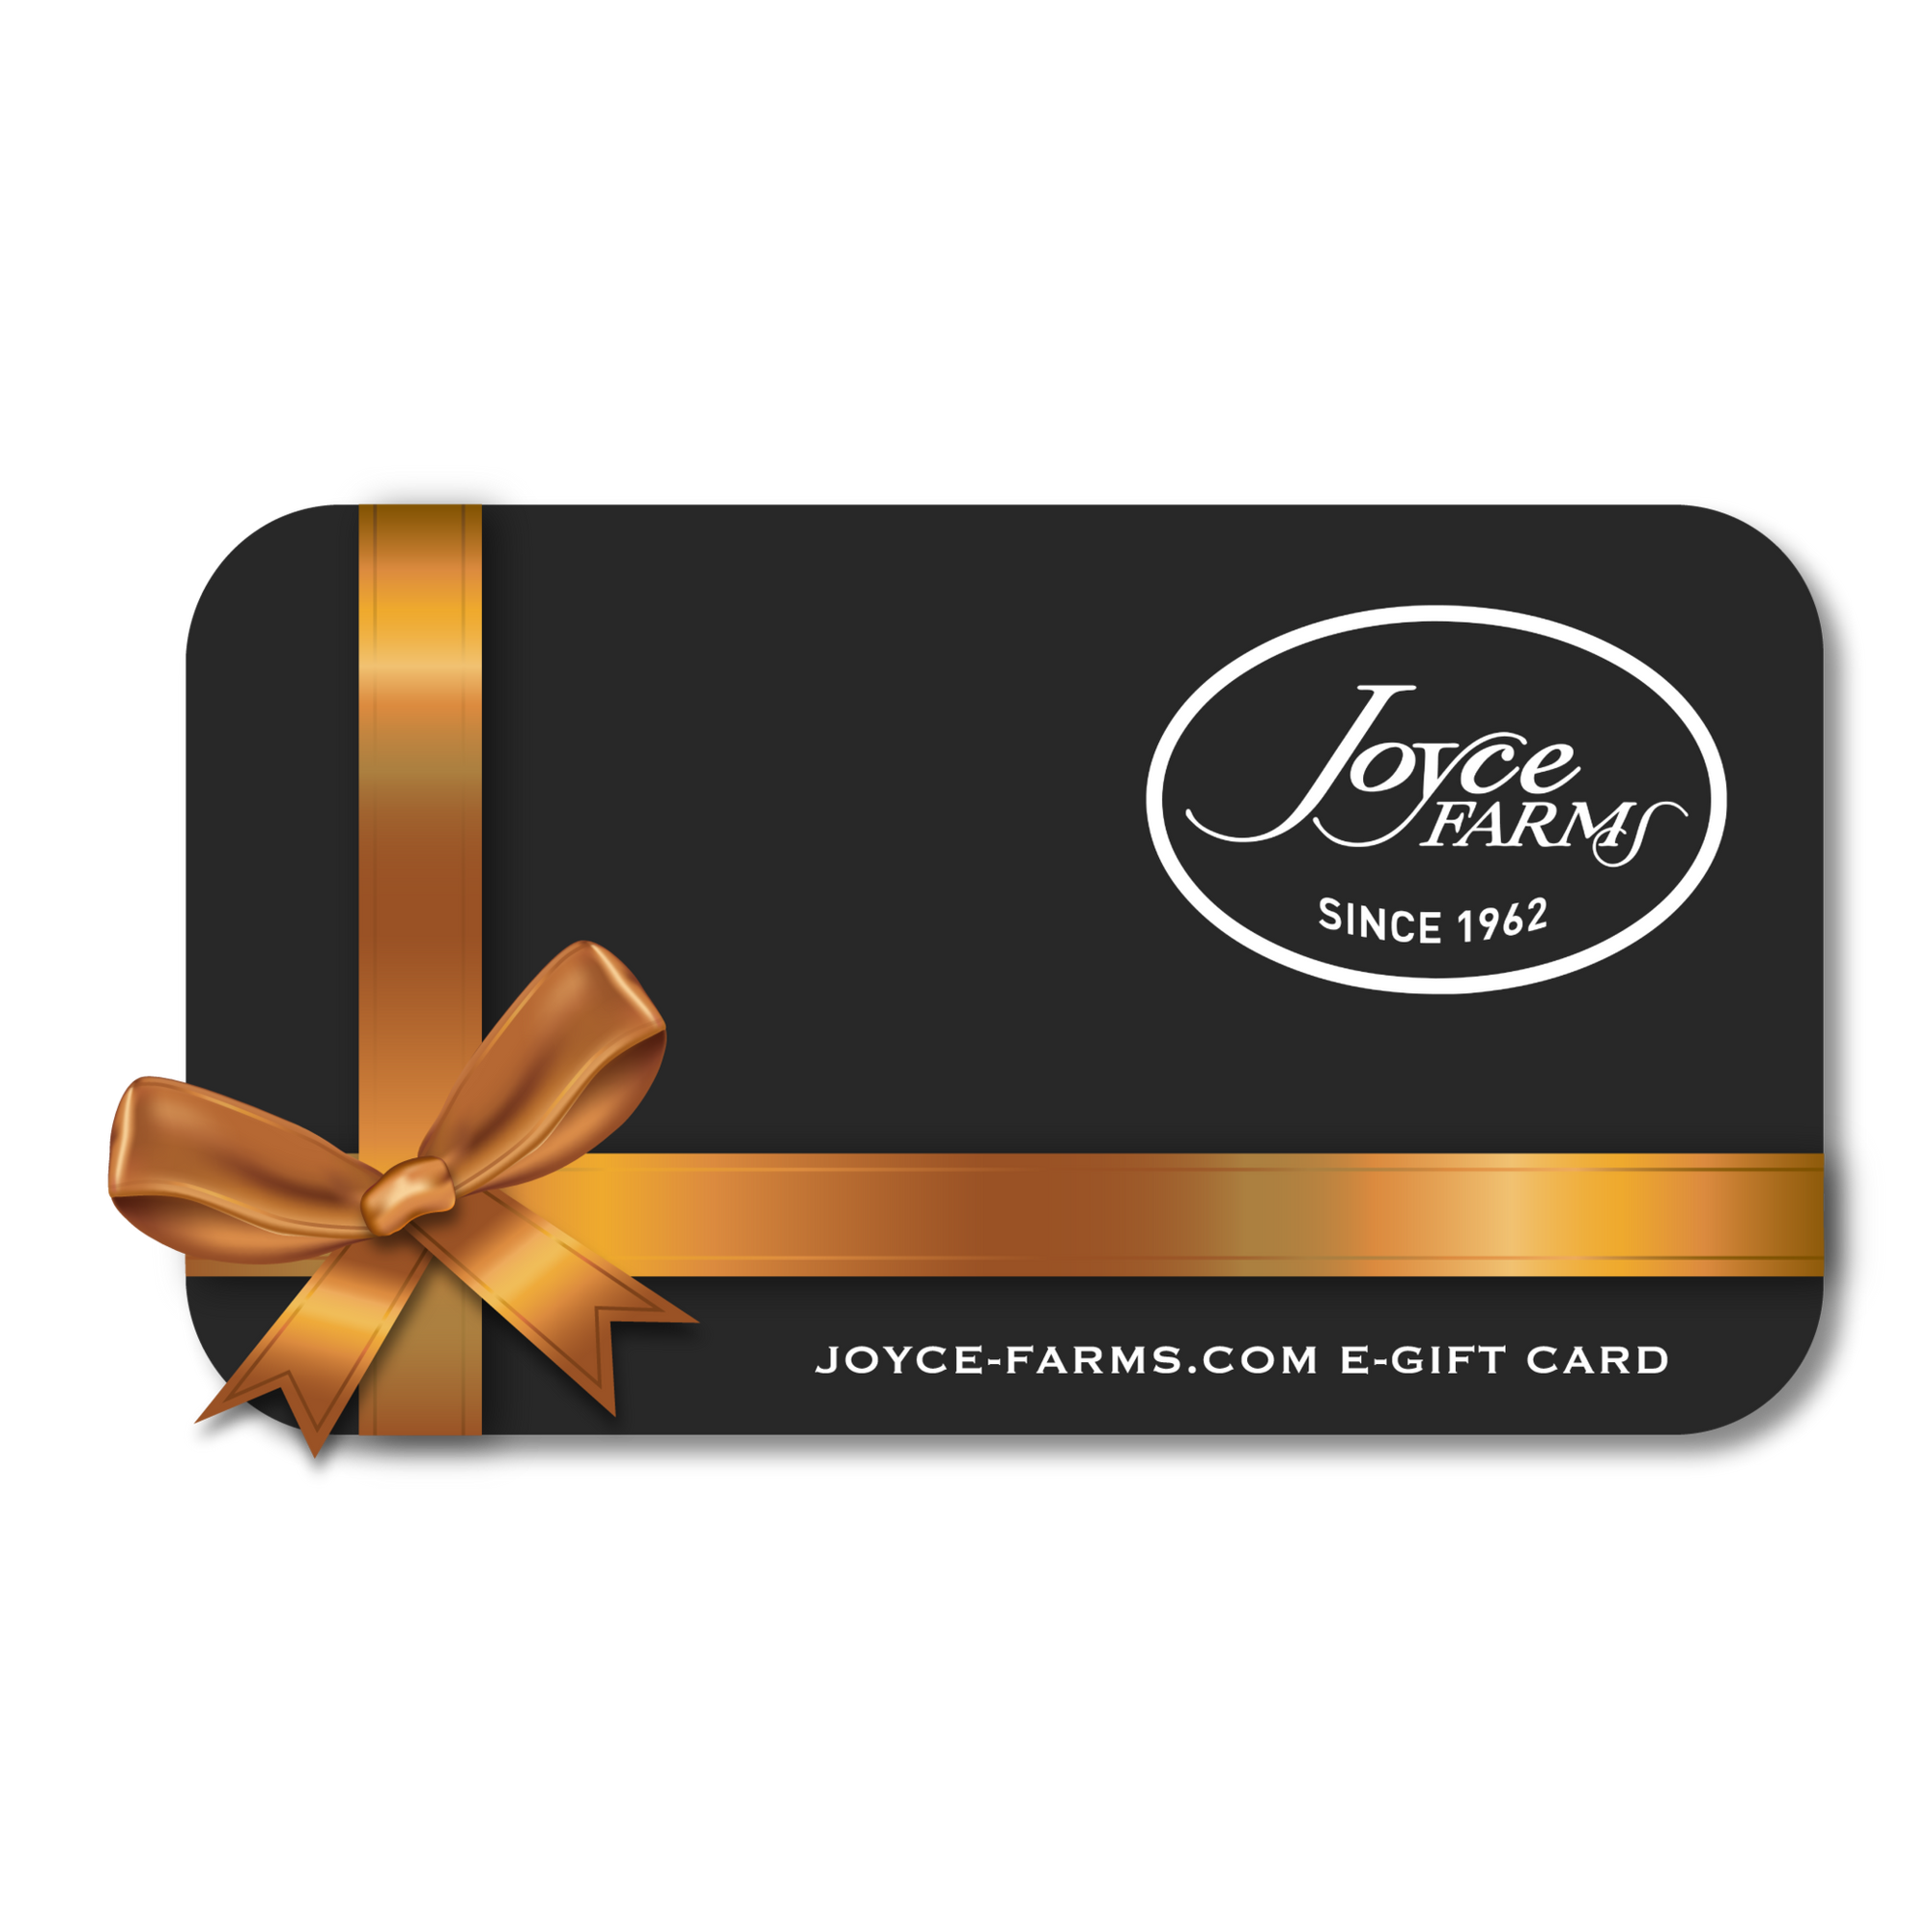 Joyce Farms Gift Card - Joyce Farms